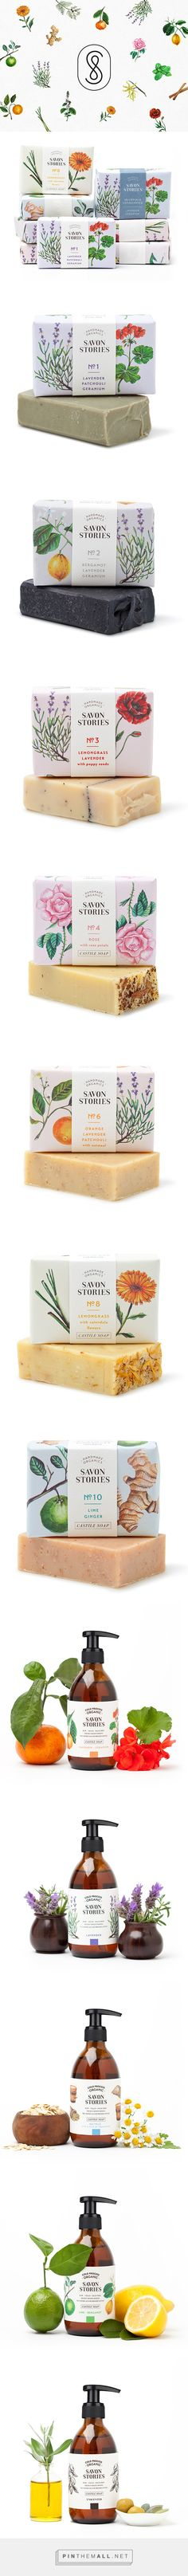 Savon Stories soaps by Menta. Pin curate by #SFields99 #packaging #design